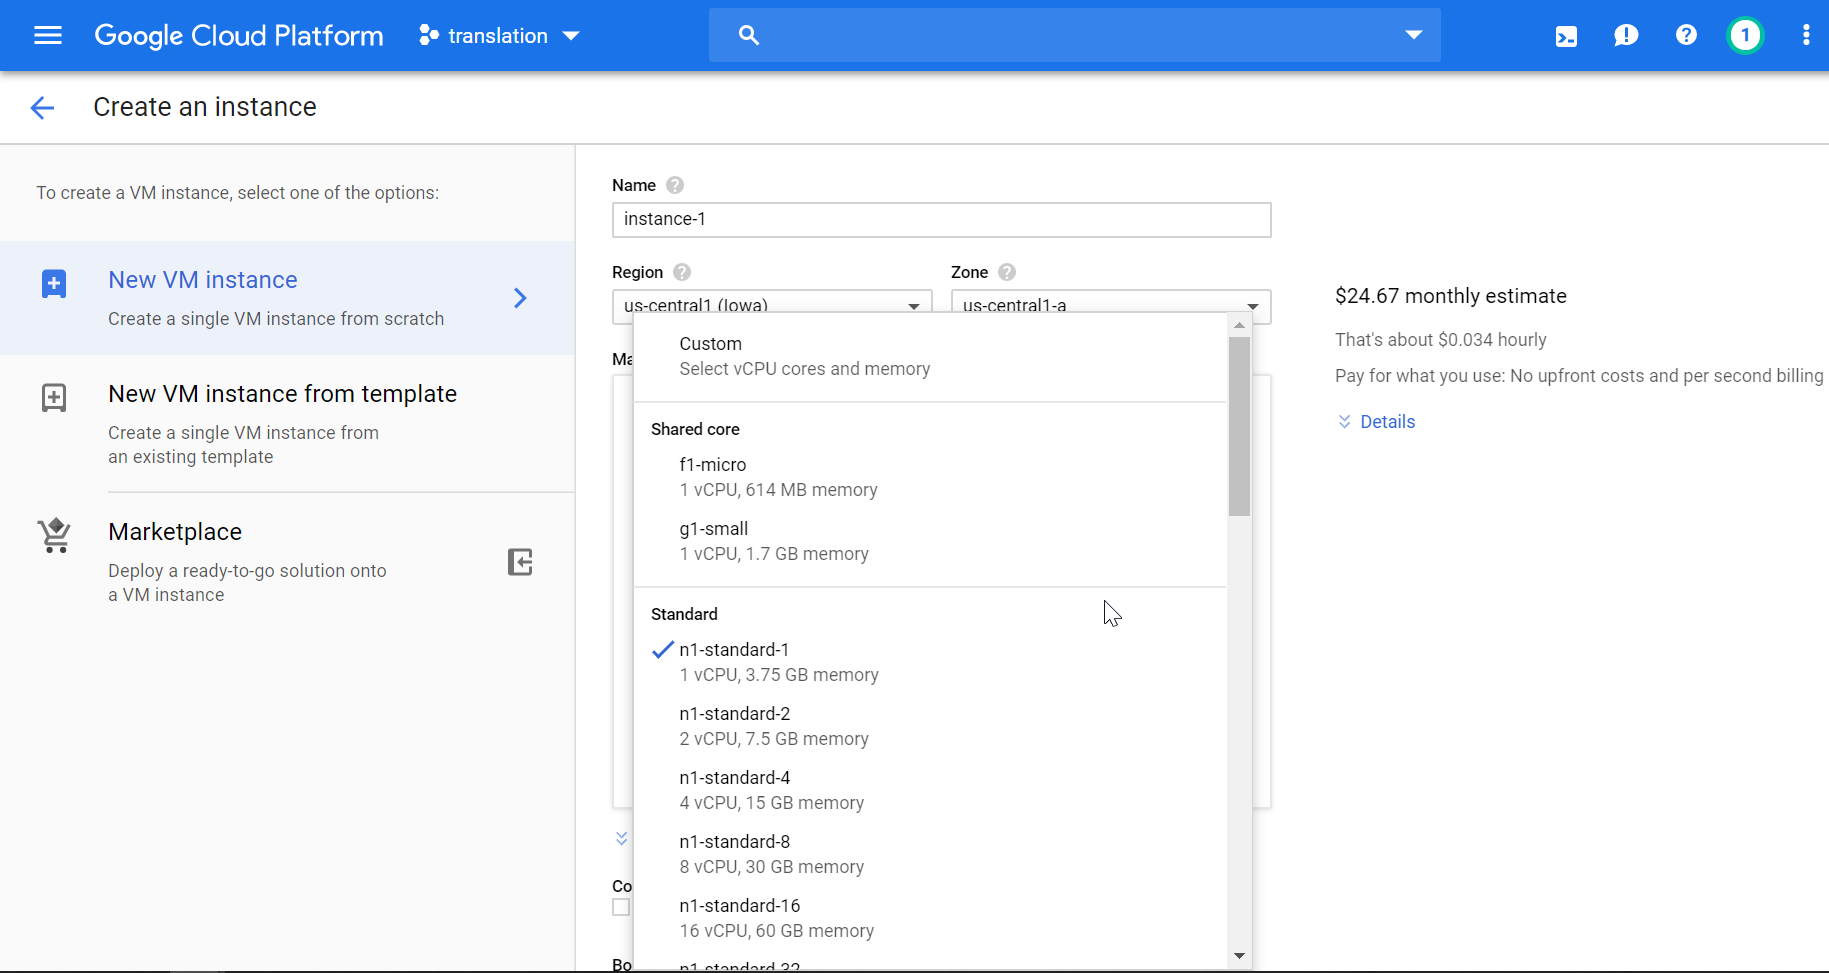 An introduction to Google Cloud in simple terms